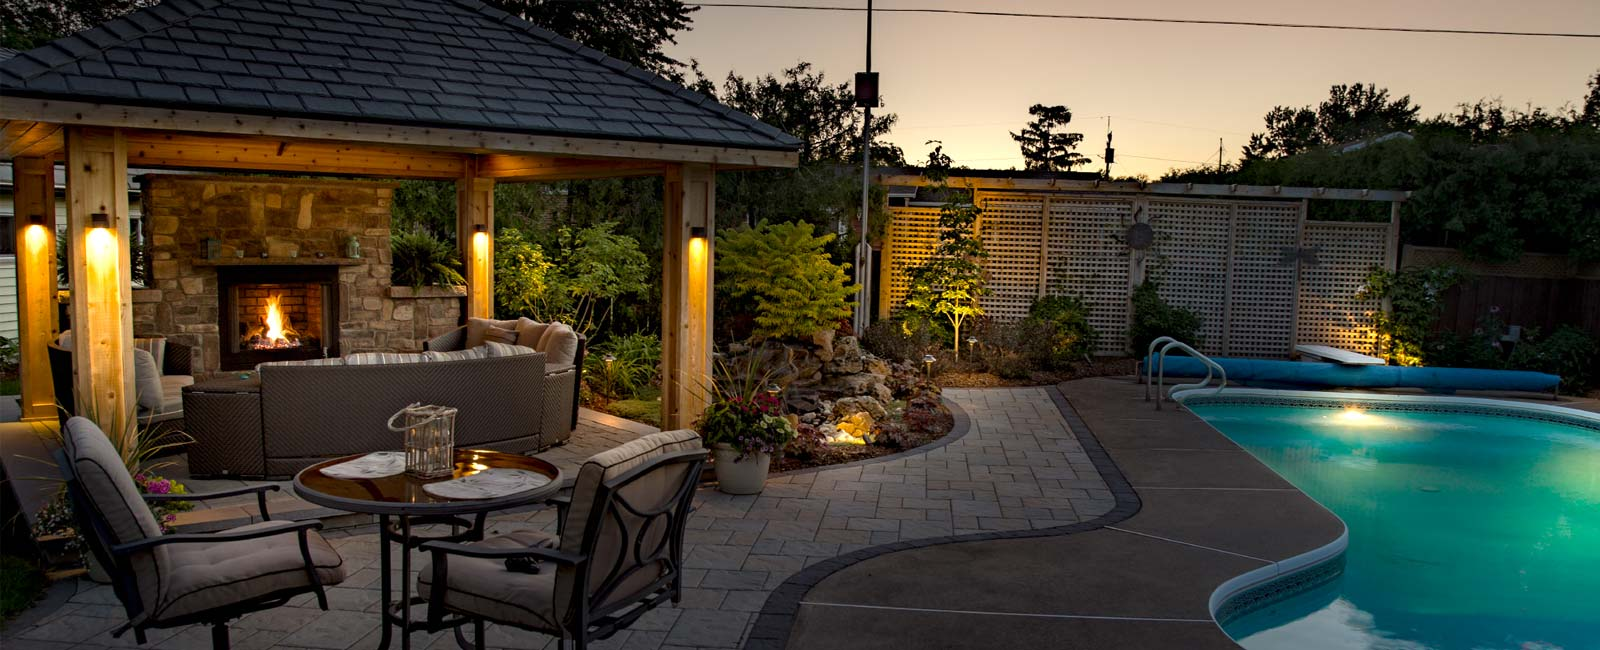 Niagara Outdoor Landscape Design, Construction U0026 Maintenance, Ontario